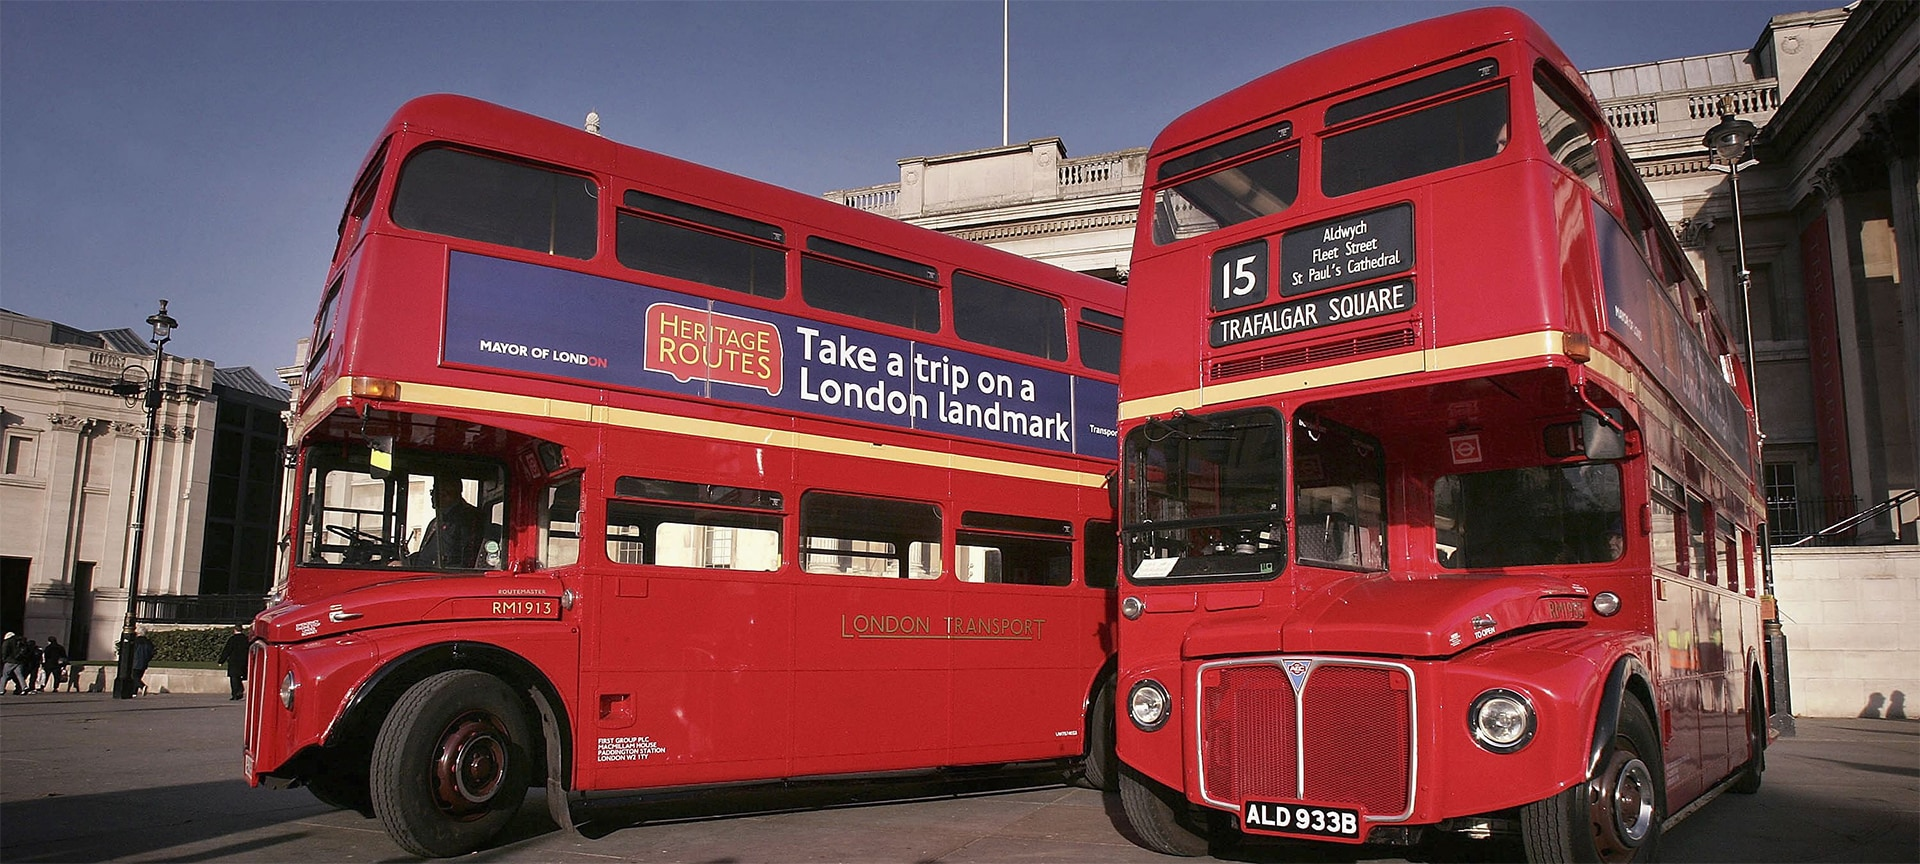 The old Routemaster buses are definitely a design icon of London Transport. They are the double-decker buses with an open platform at the back that allow passengers to jump on and off. The buses used to operate with a conductor on board who would sell tickets (from a machine they had hung round their neck), while the driver was tucked away in a small compartment at the front.